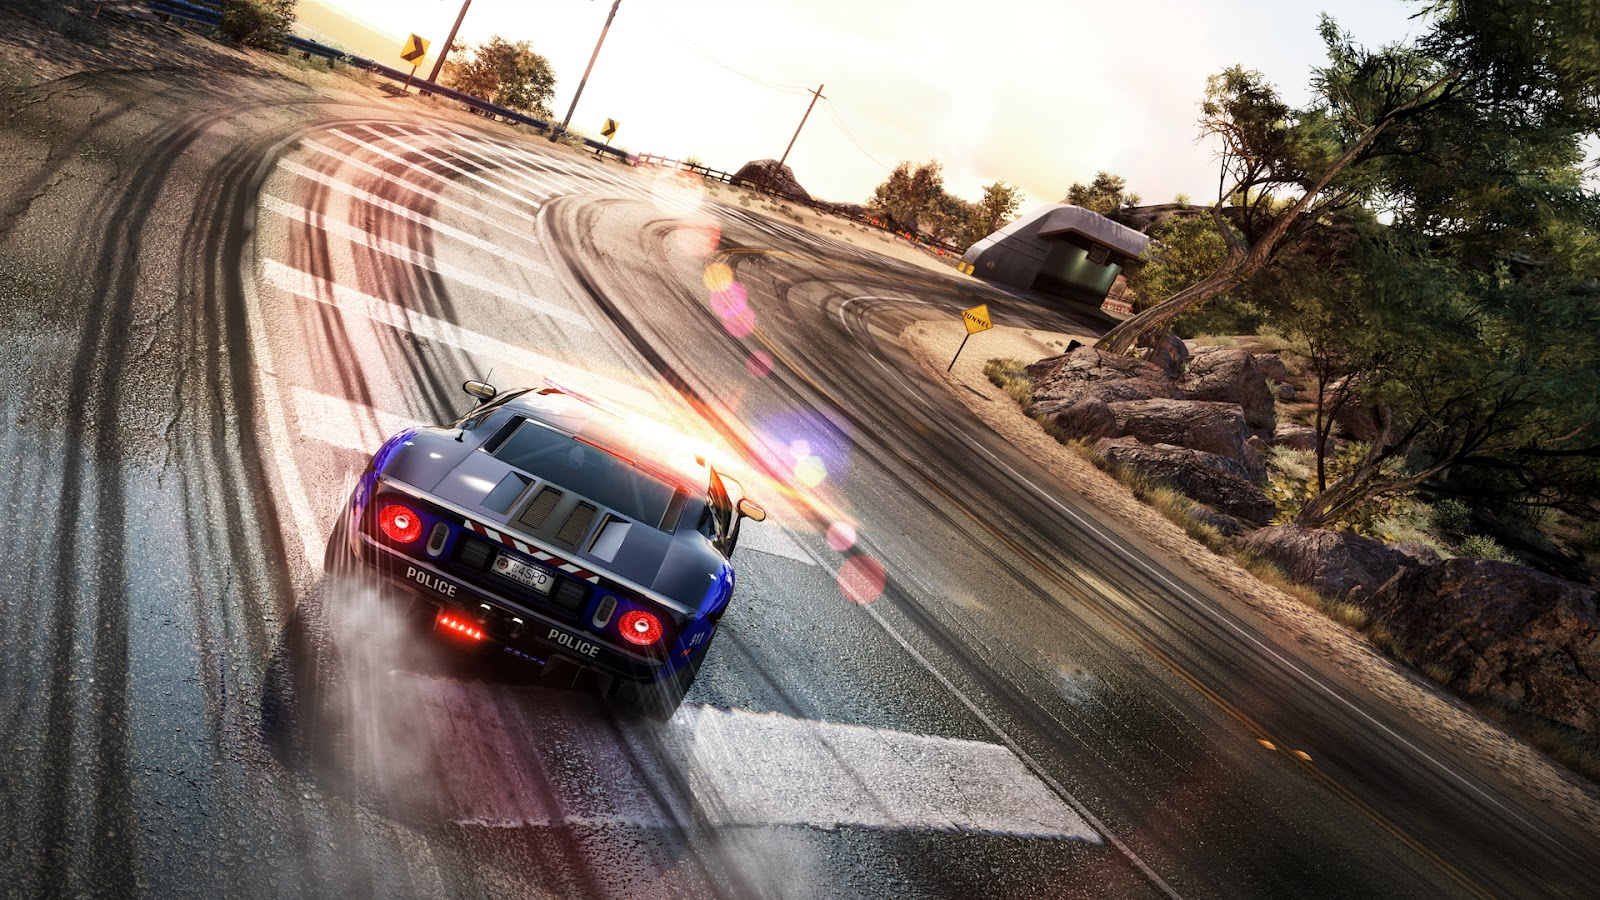 http://2.bp.blogspot.com/-eIEDuFJL63k/UEDY9-QuDnI/AAAAAAAAjTA/m2tZkhuTkeA/s1600/Need-For-Speed-Hot-Pursuit_NFS_Wallpapers-de-Juegos.jpg